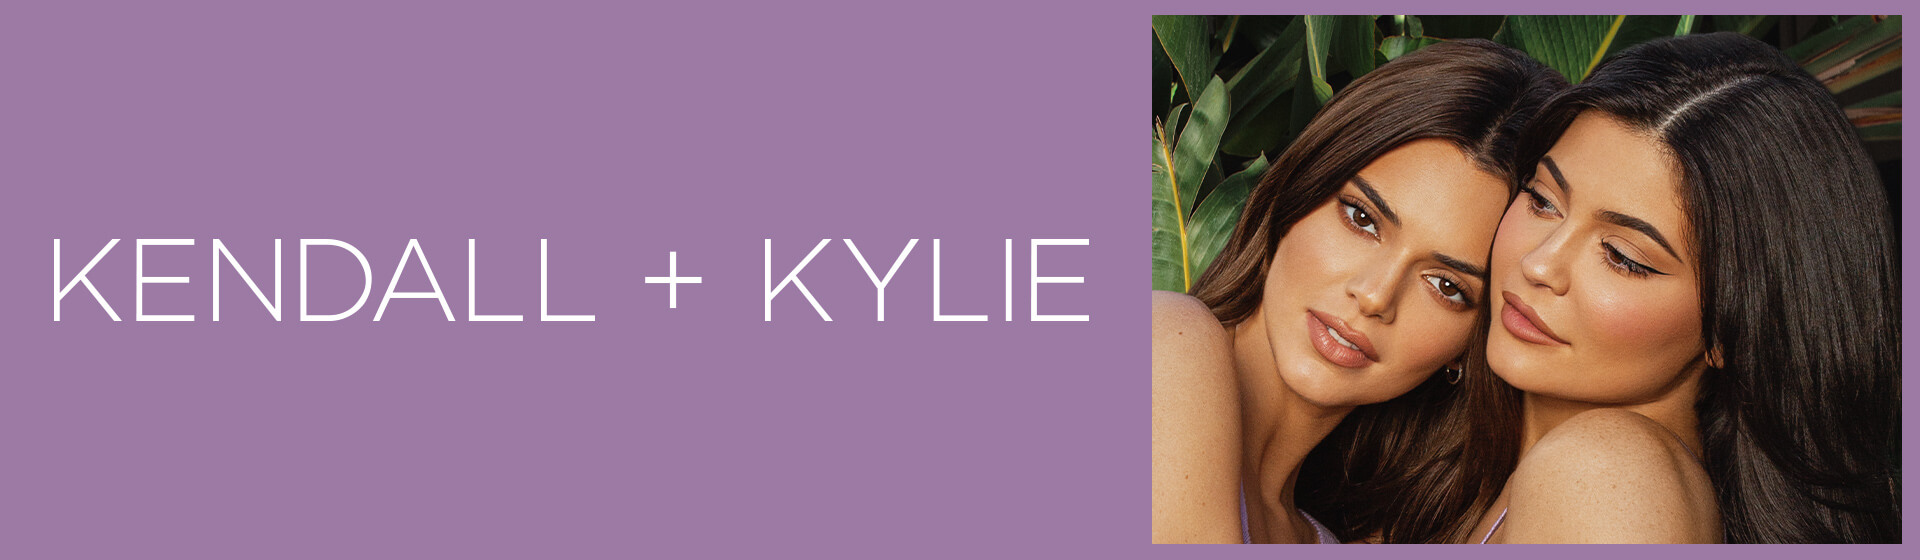 Kendall + Kylie Exclusive Handbag Collection Shoelove by